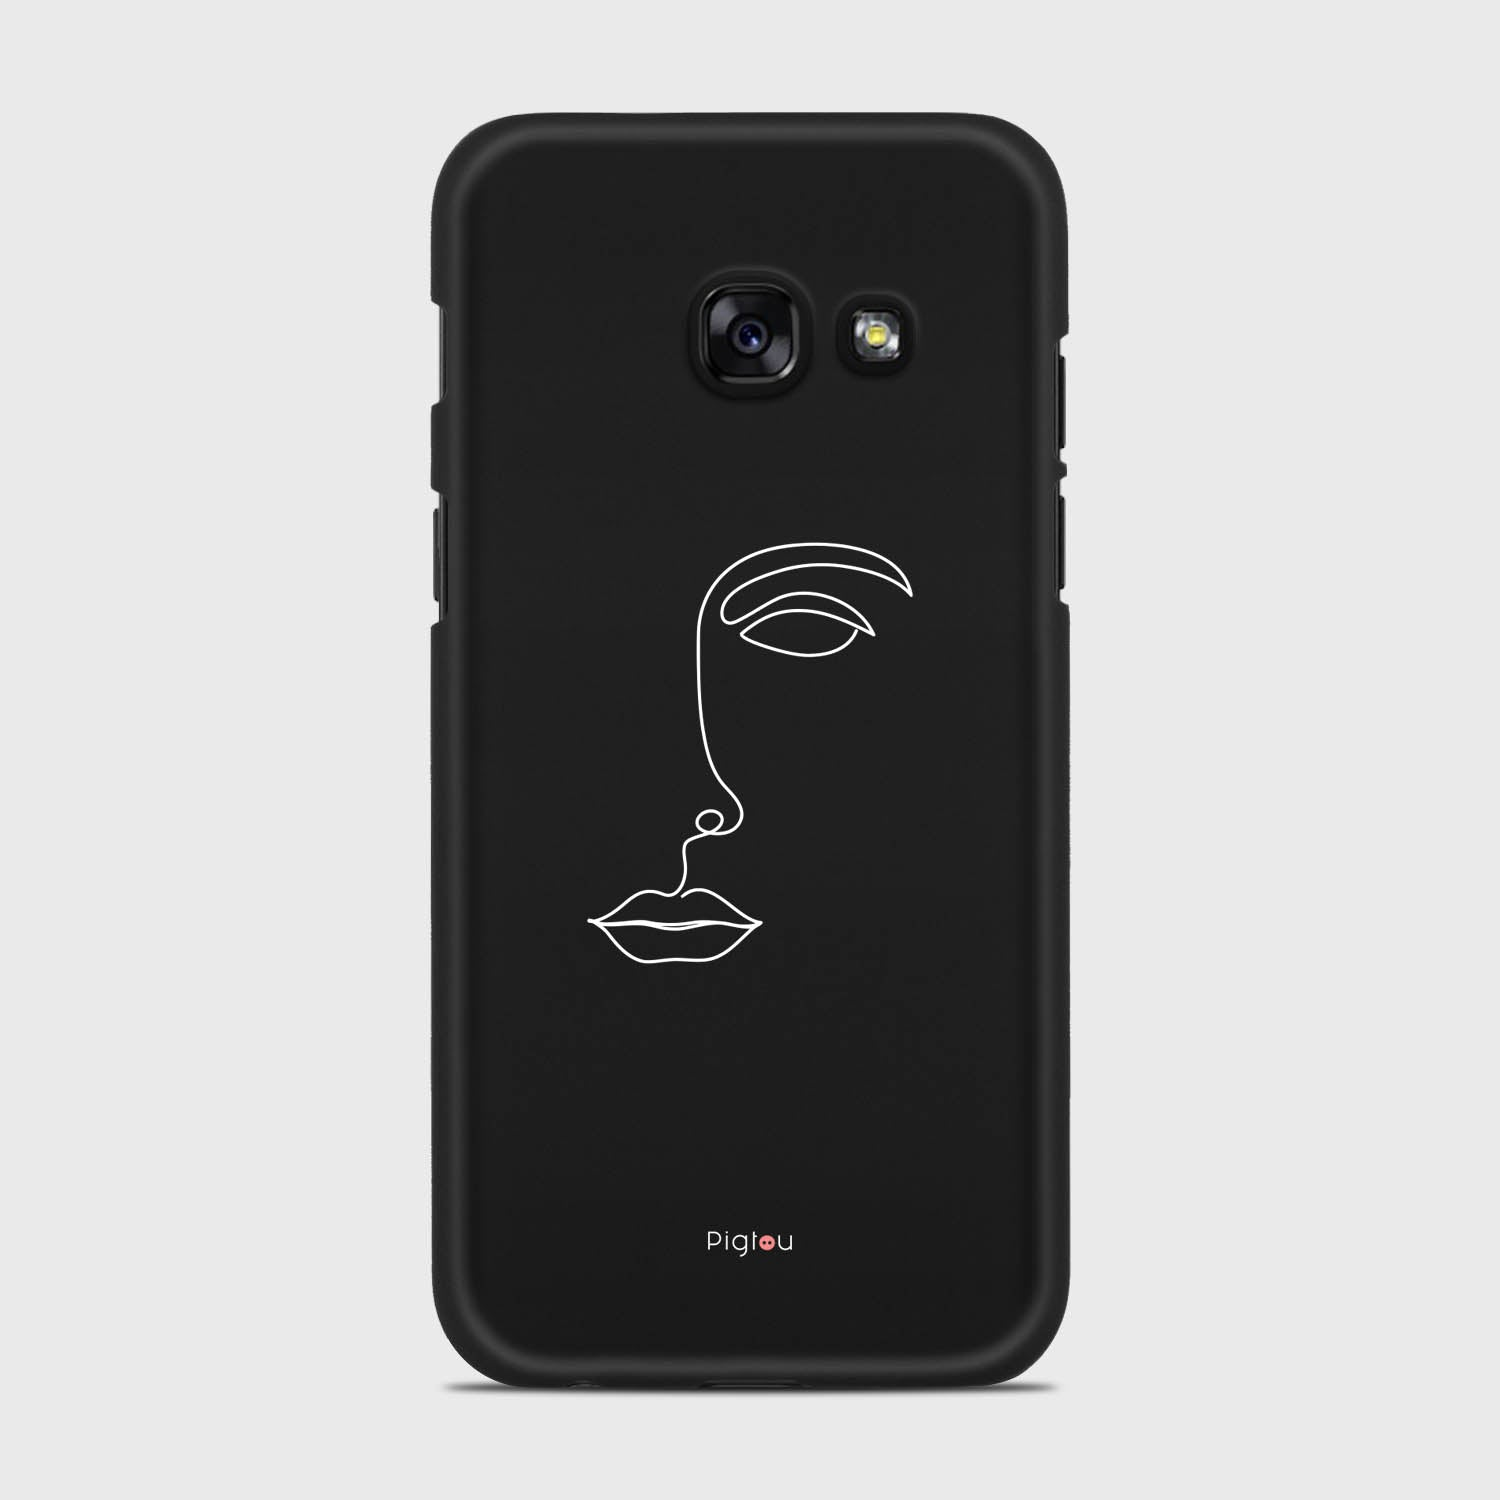 SILHOUETTE FACE Samsung Galaxy A3 cases | Pigtou